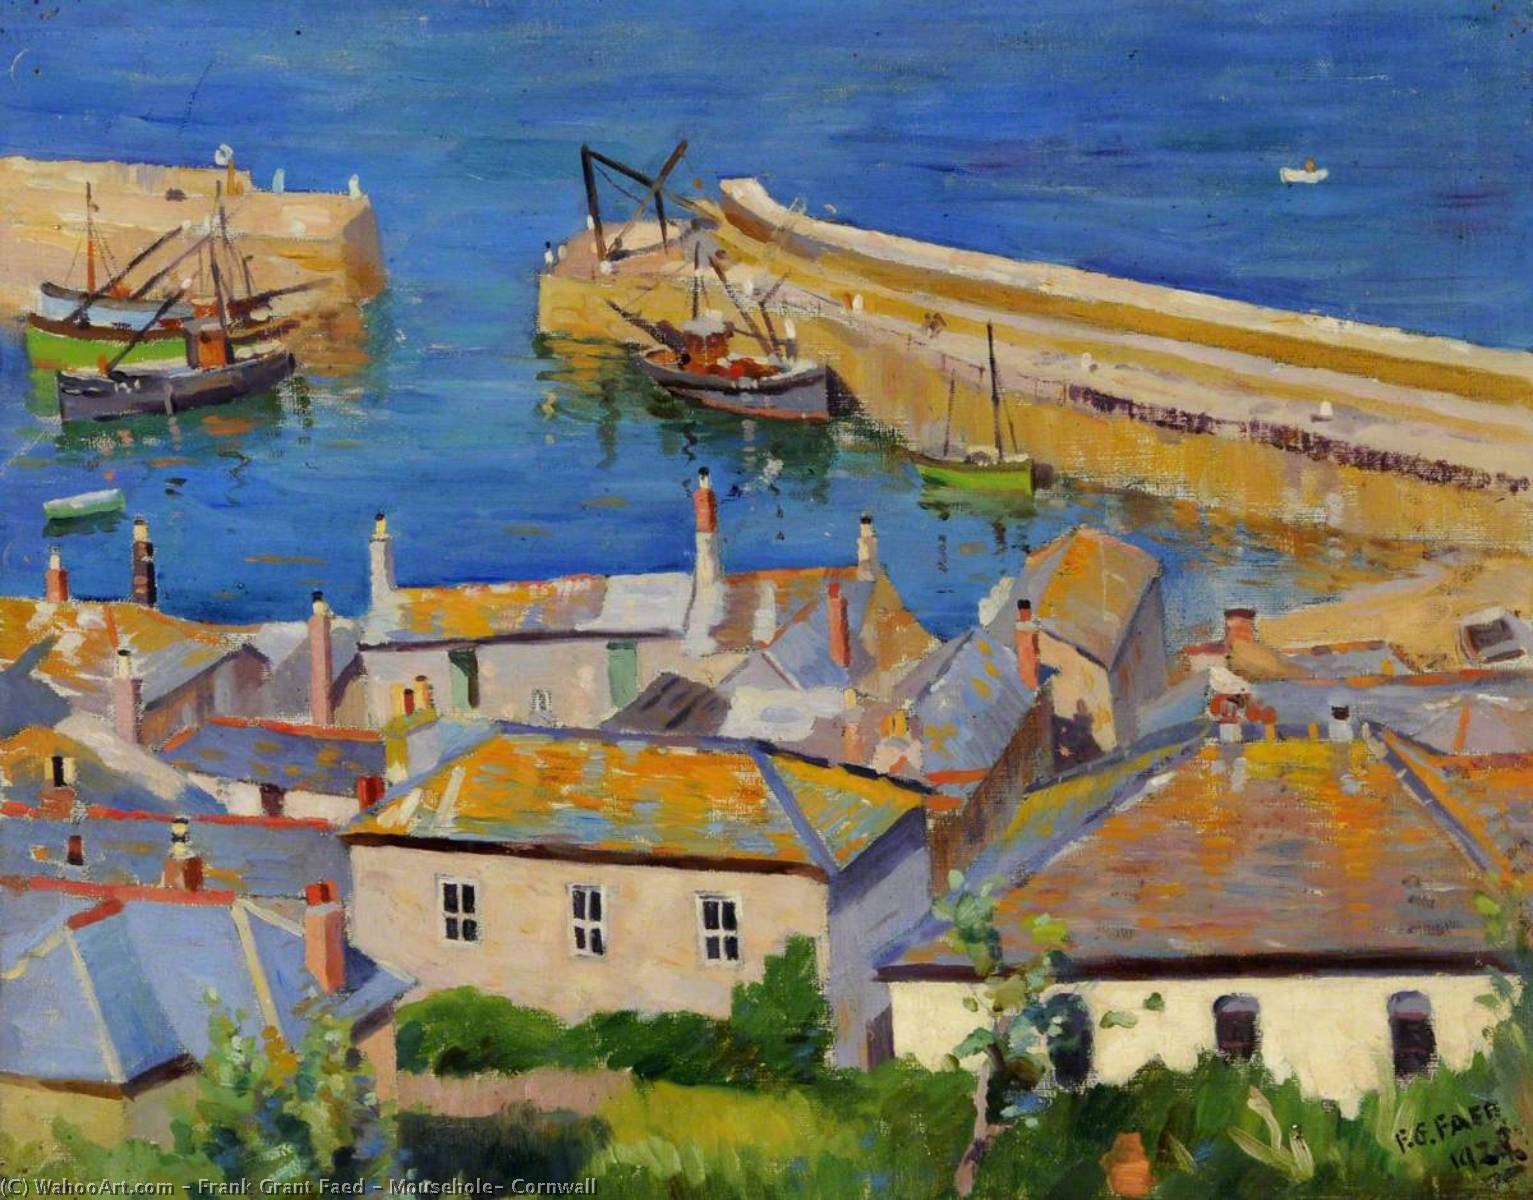 Mousehole, Cornwall, 1938 by Frank Grant Faed | Paintings Reproductions Frank Grant Faed | WahooArt.com